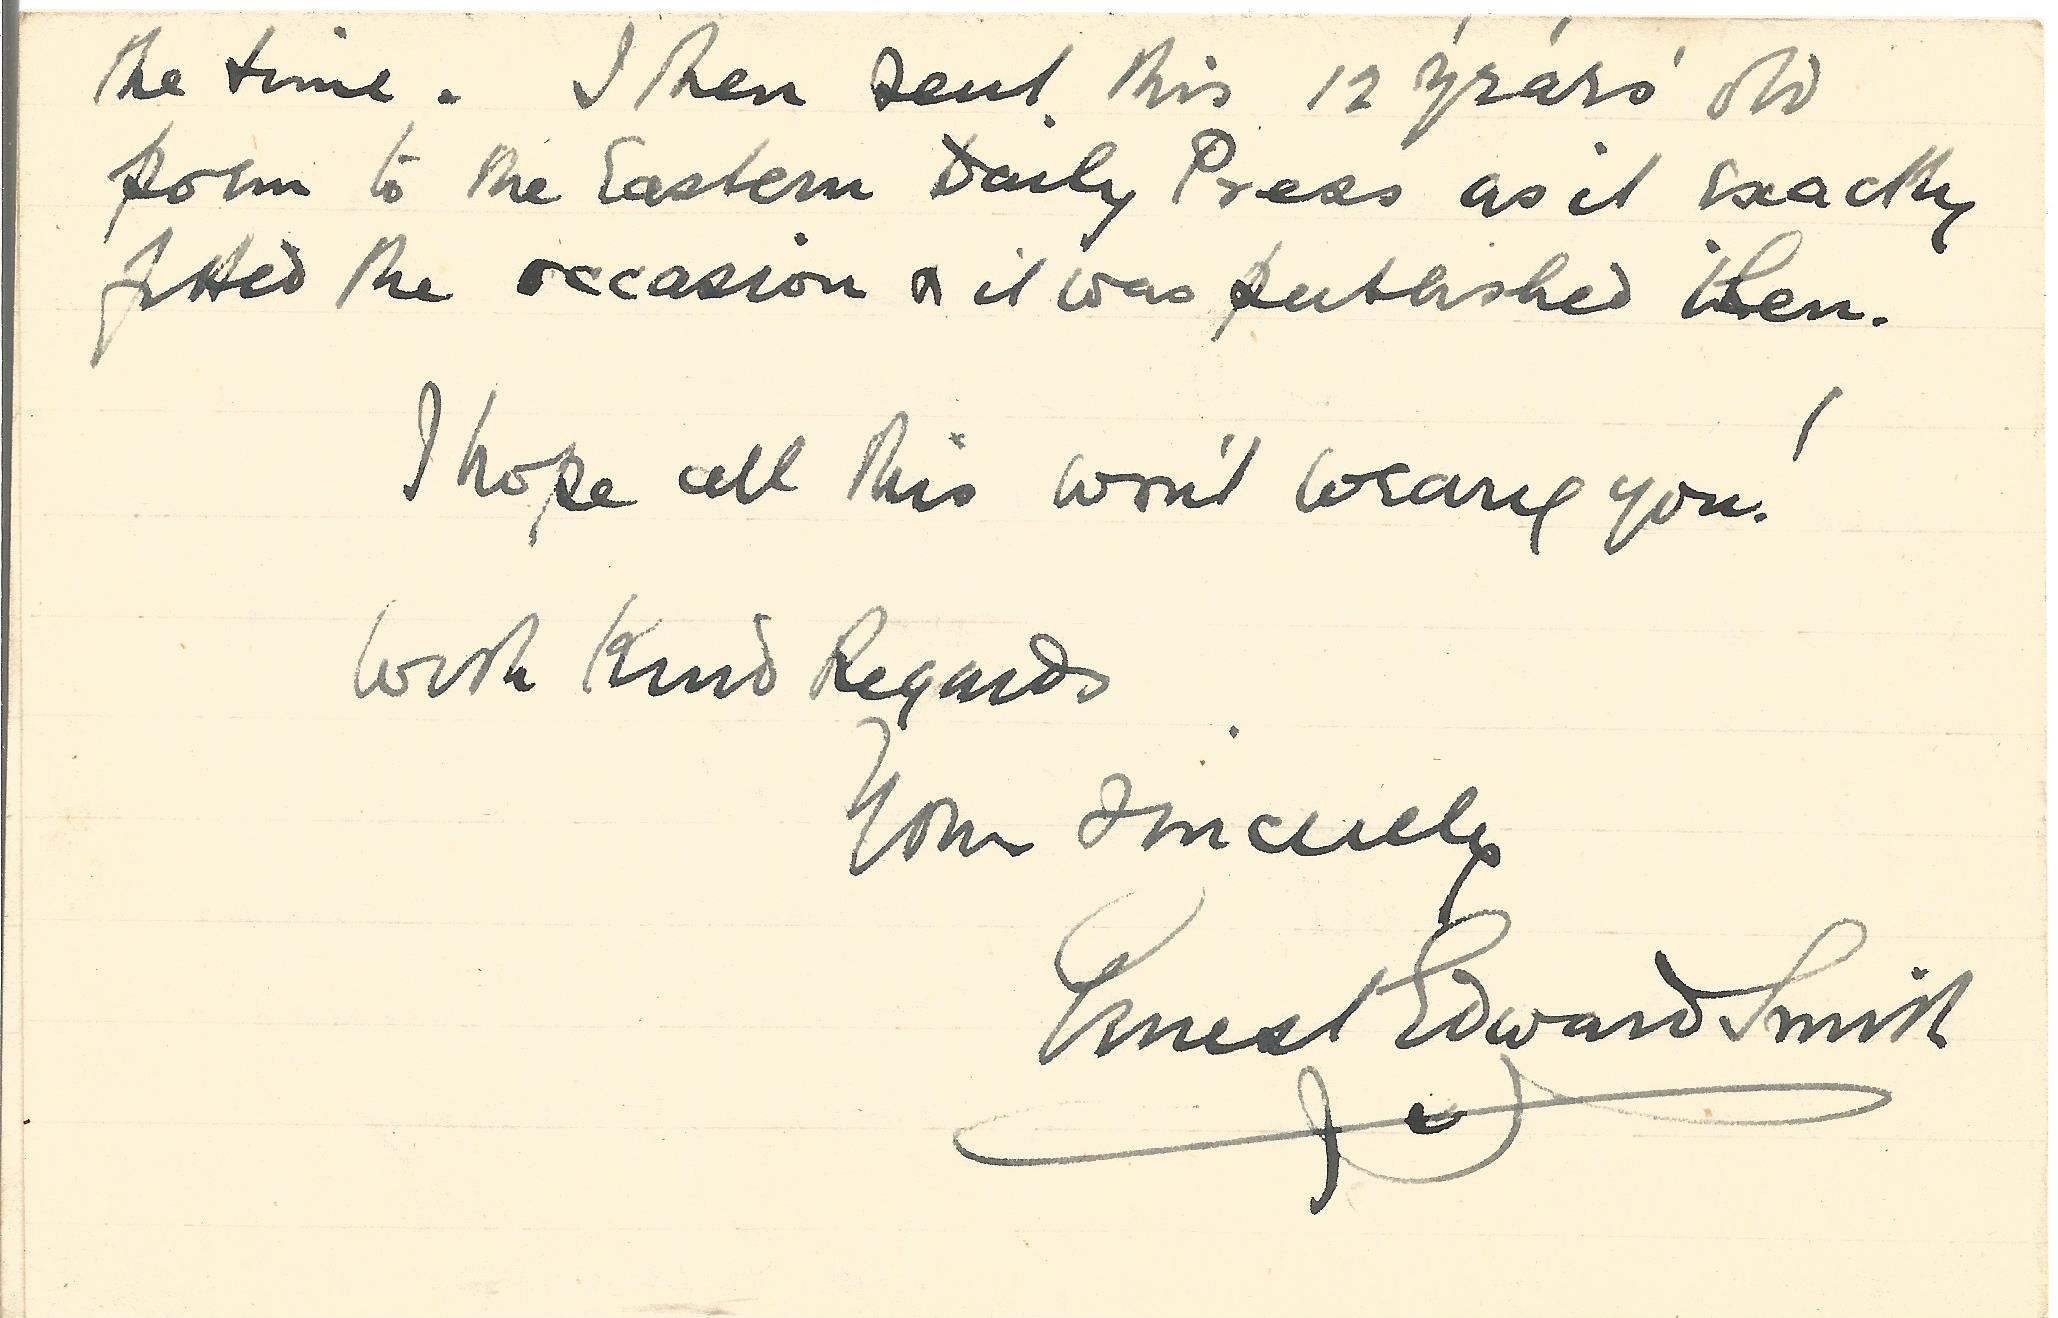 Ern Edward Smith Paperback Book Poems 1925 Unsigned but Includes a Hand Written Letter signed by Ern - Image 2 of 2